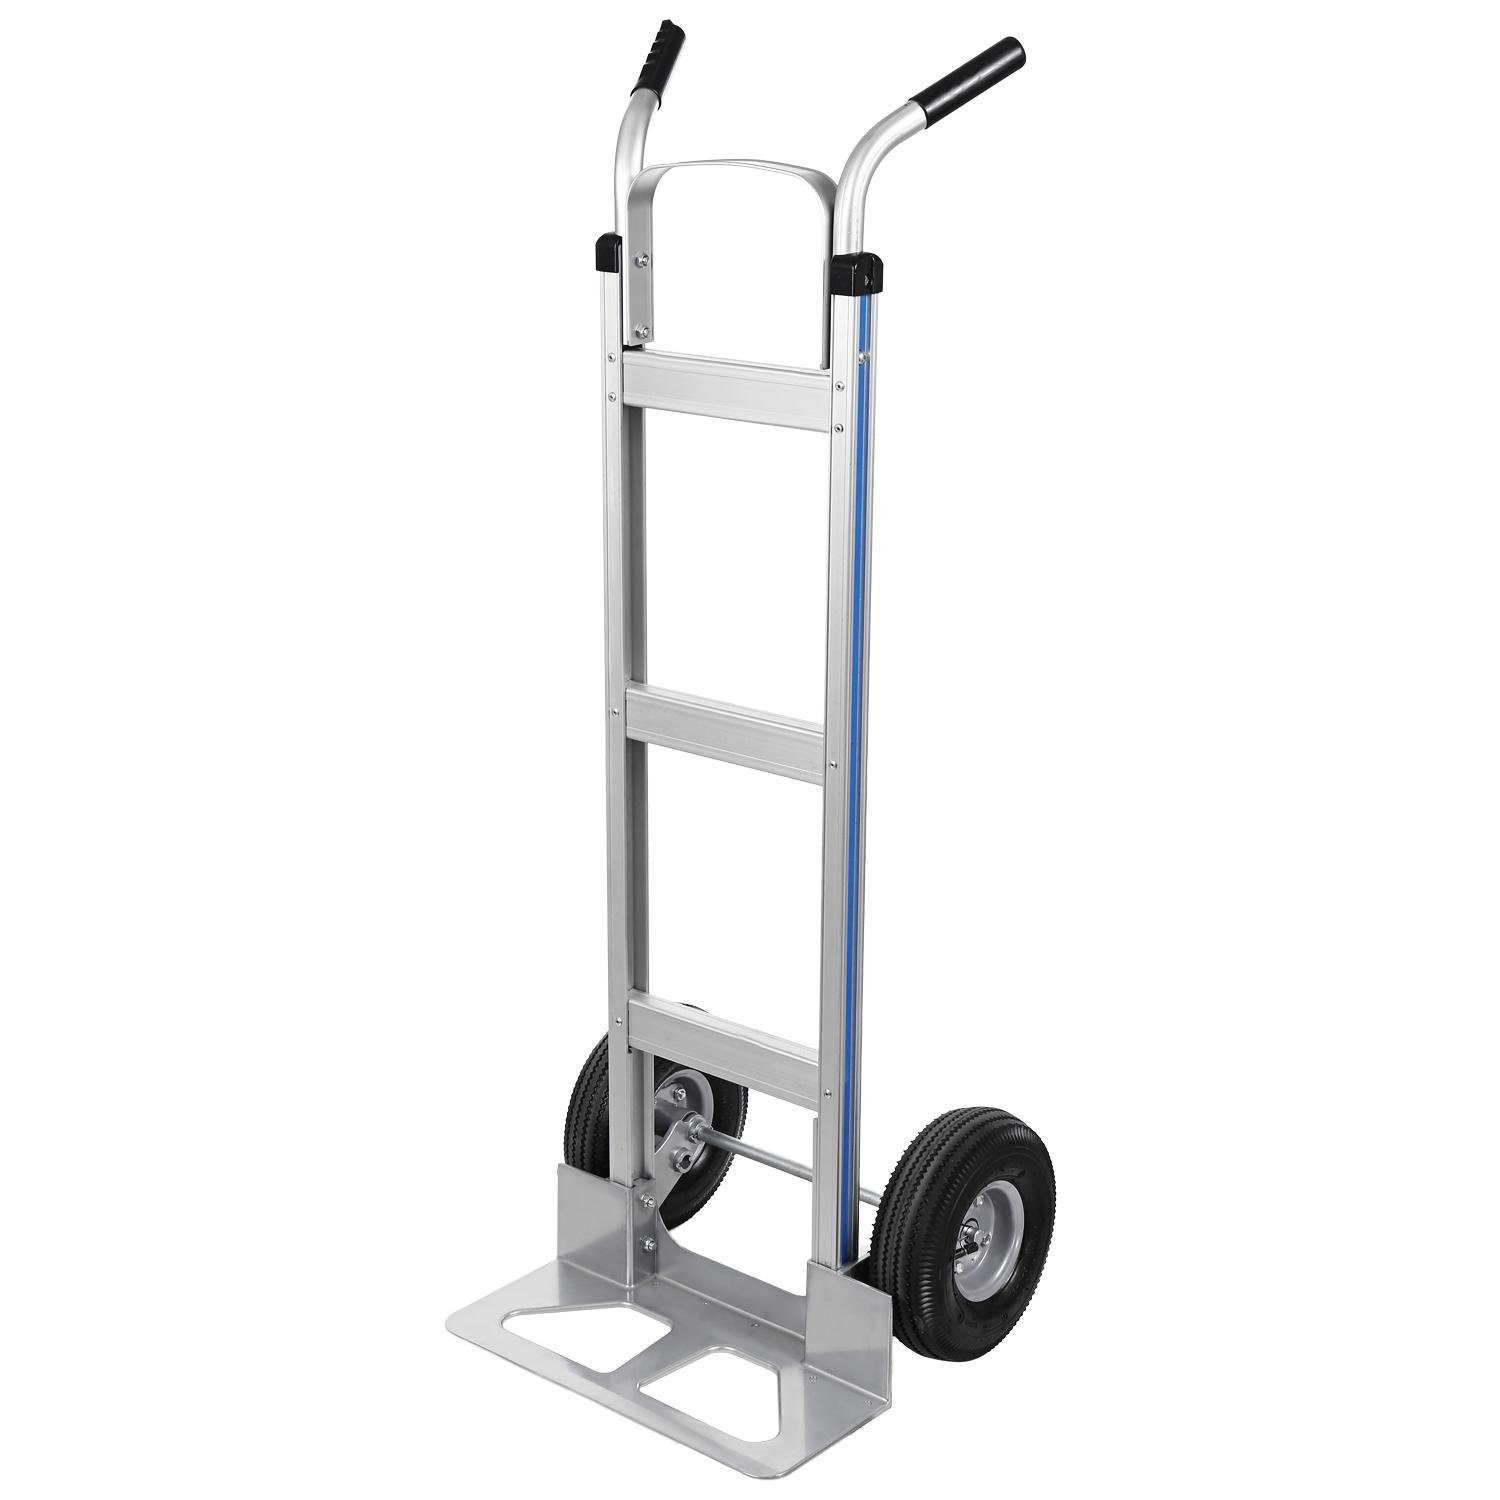 Aluminum Hand Trucks 500LBS With 2 Pneumatic Tires Dolly, Double Pistol Grip Handle Heavy Duty Trolley/Cart With 2 Wrench